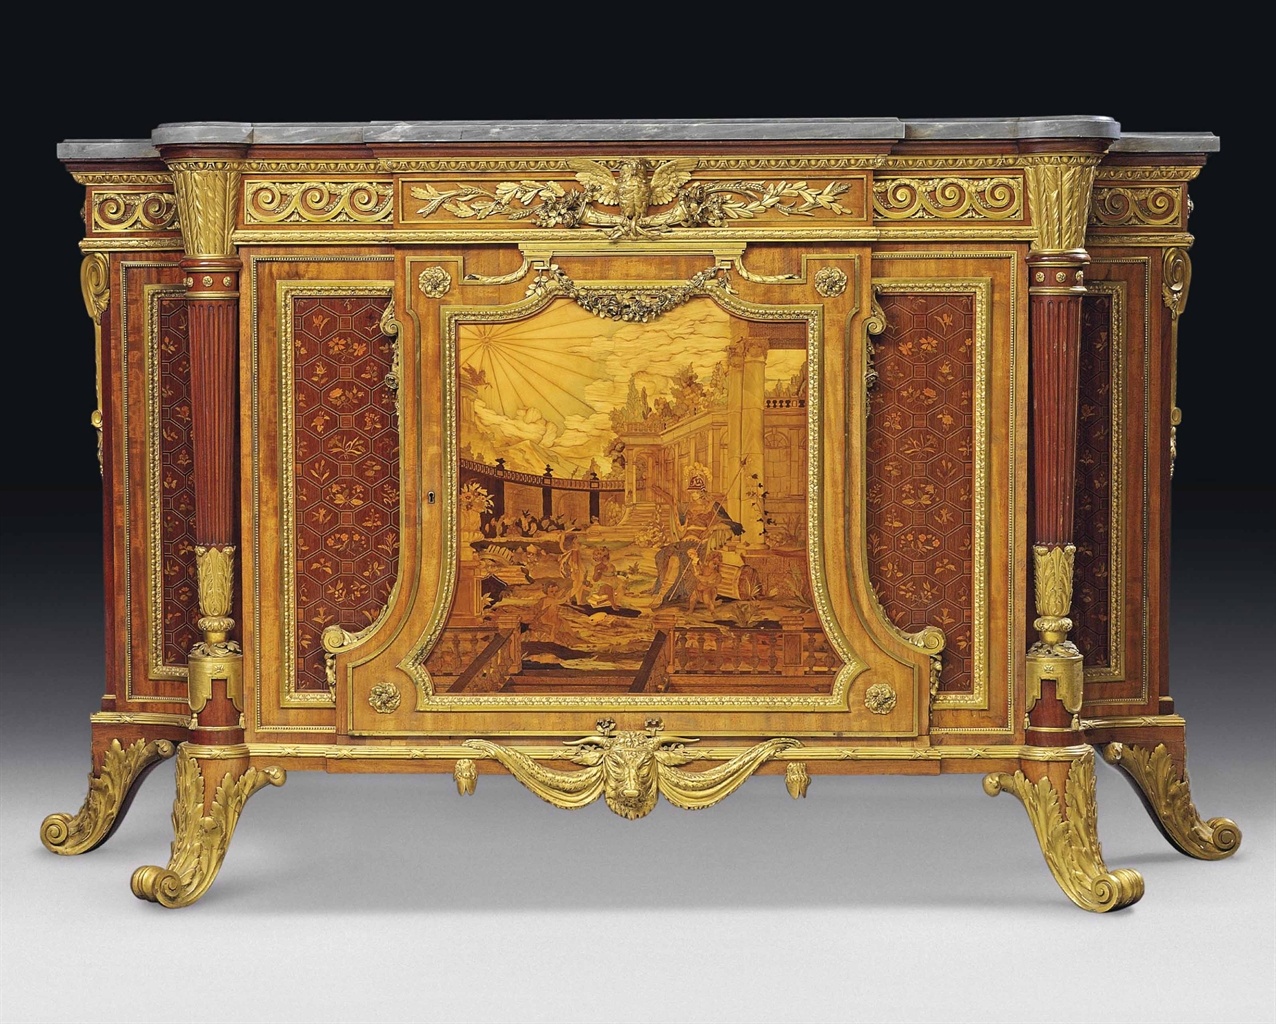 1000 images about french furniture on pinterest rococo for French rococo furniture